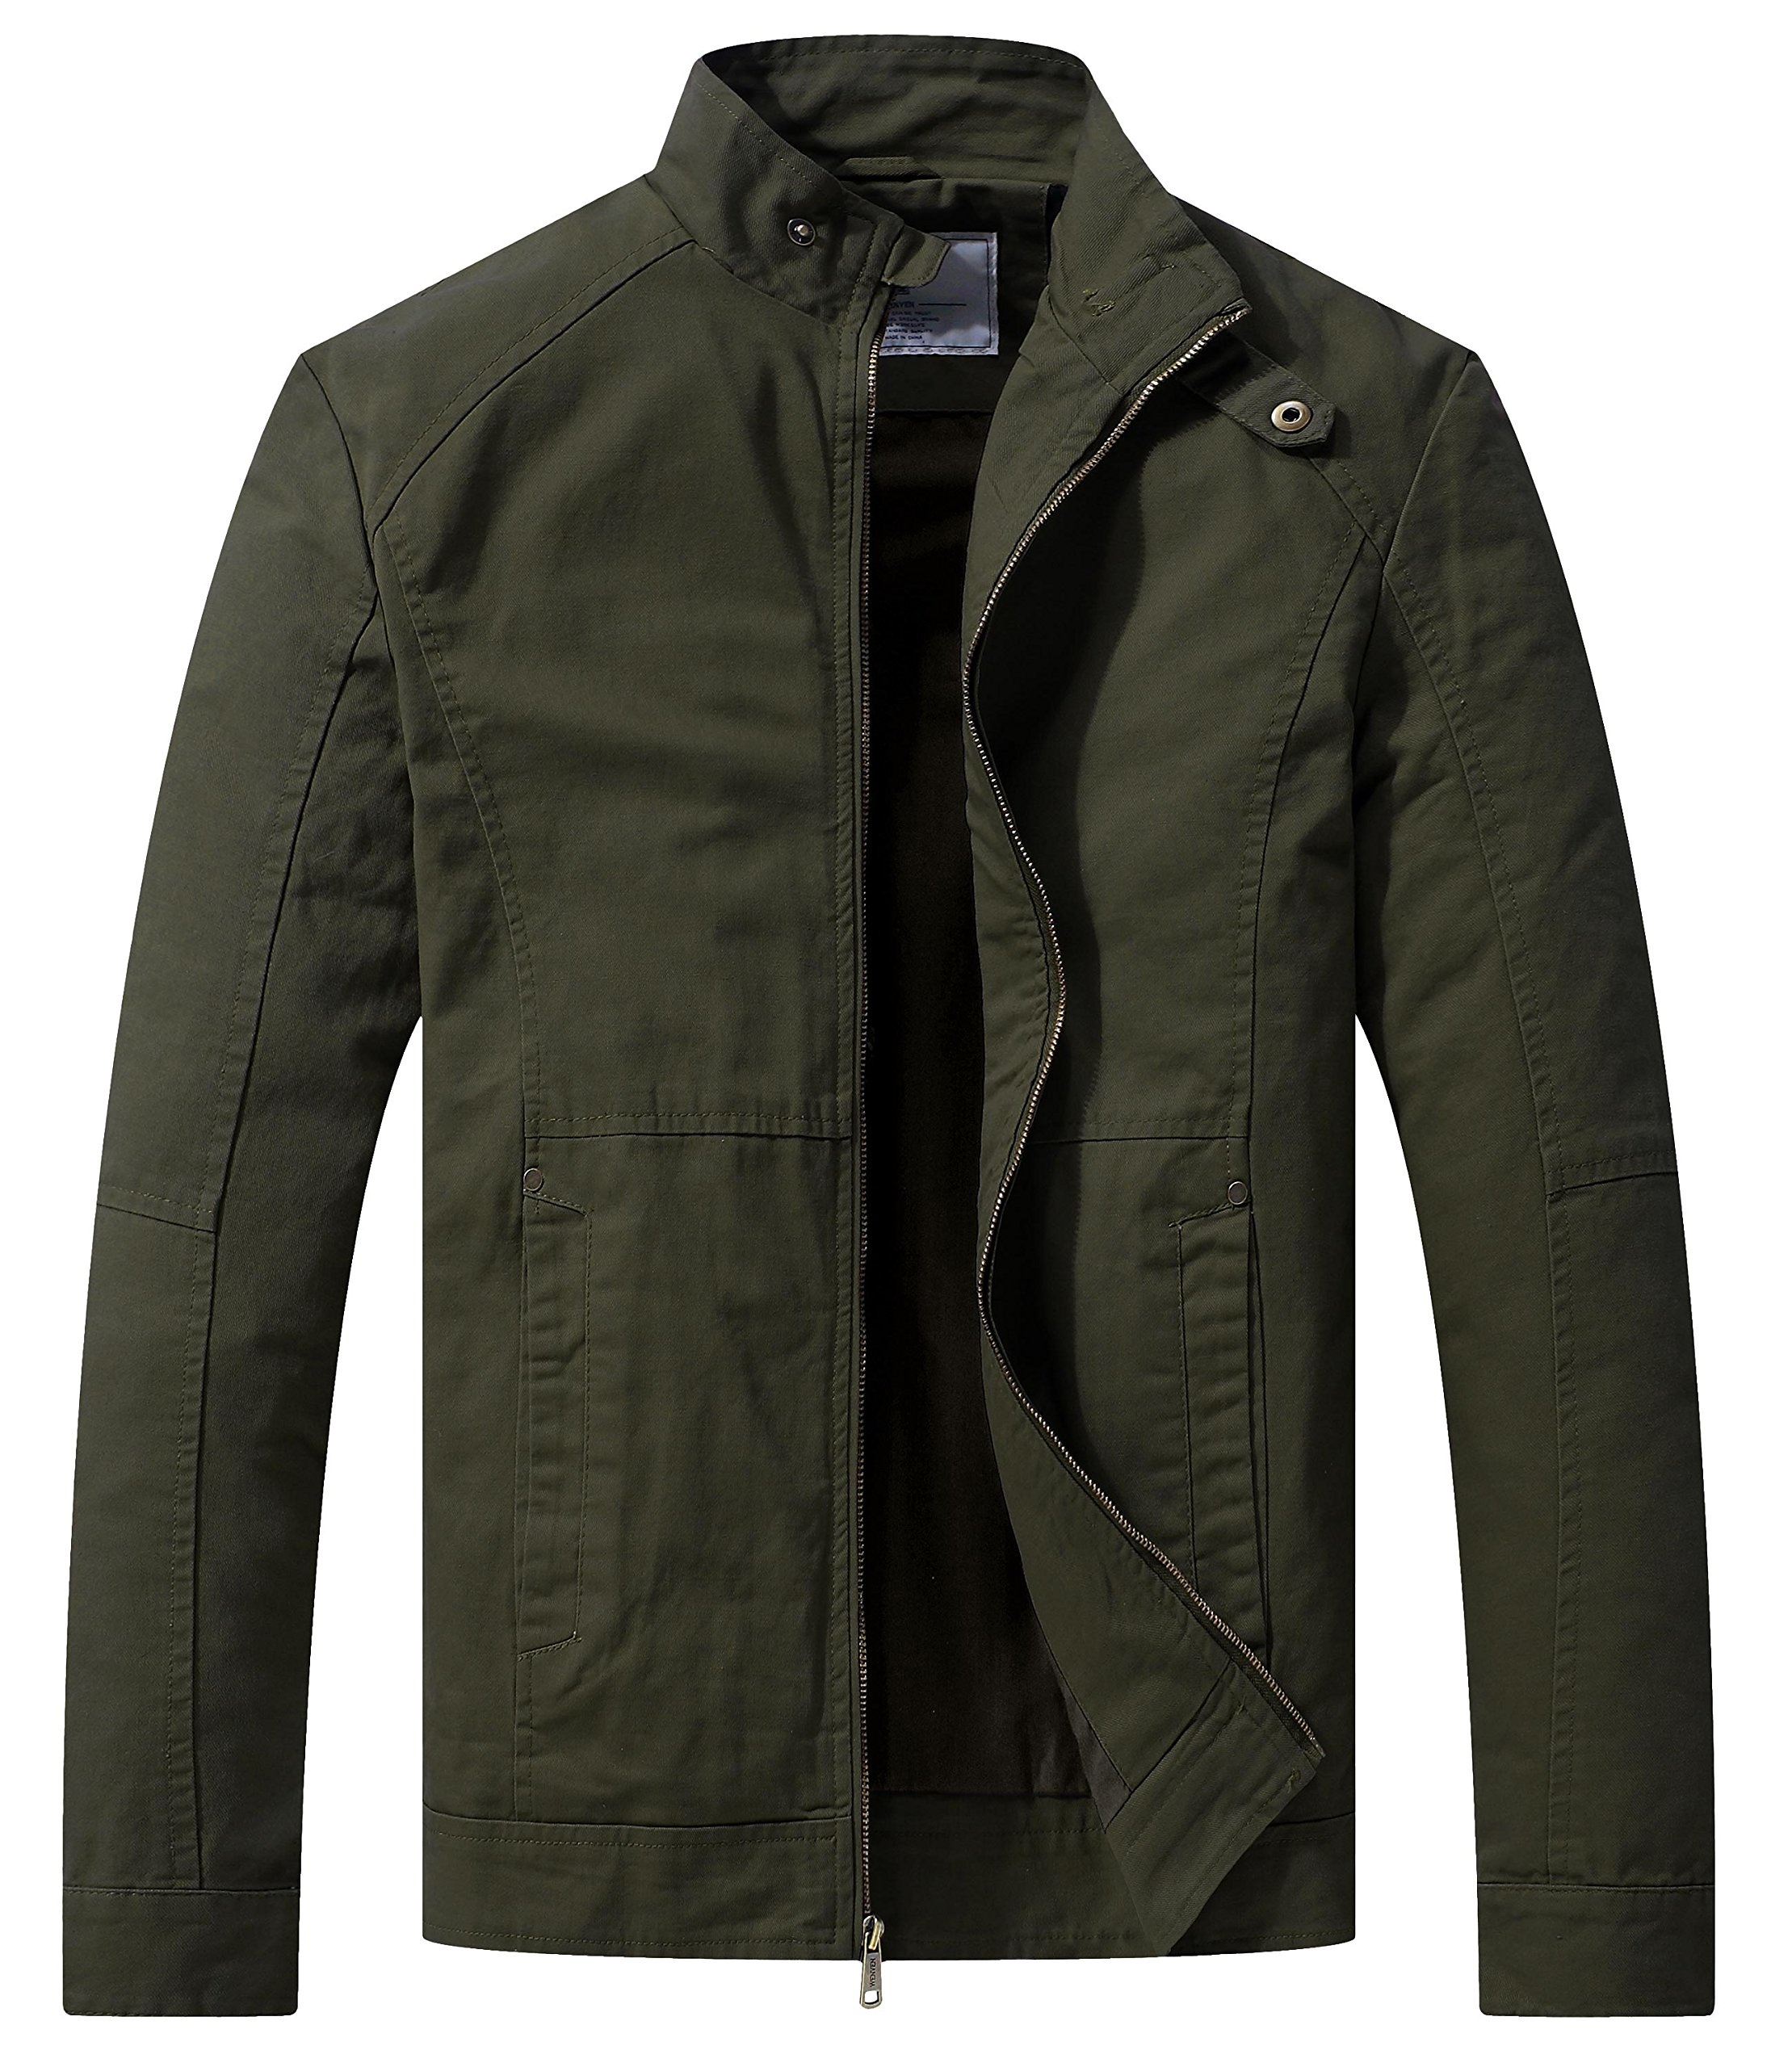 WenVen Men's Spring Casual Lightweight Full Zip Military Jacket(Army Green,Medium) by WenVen